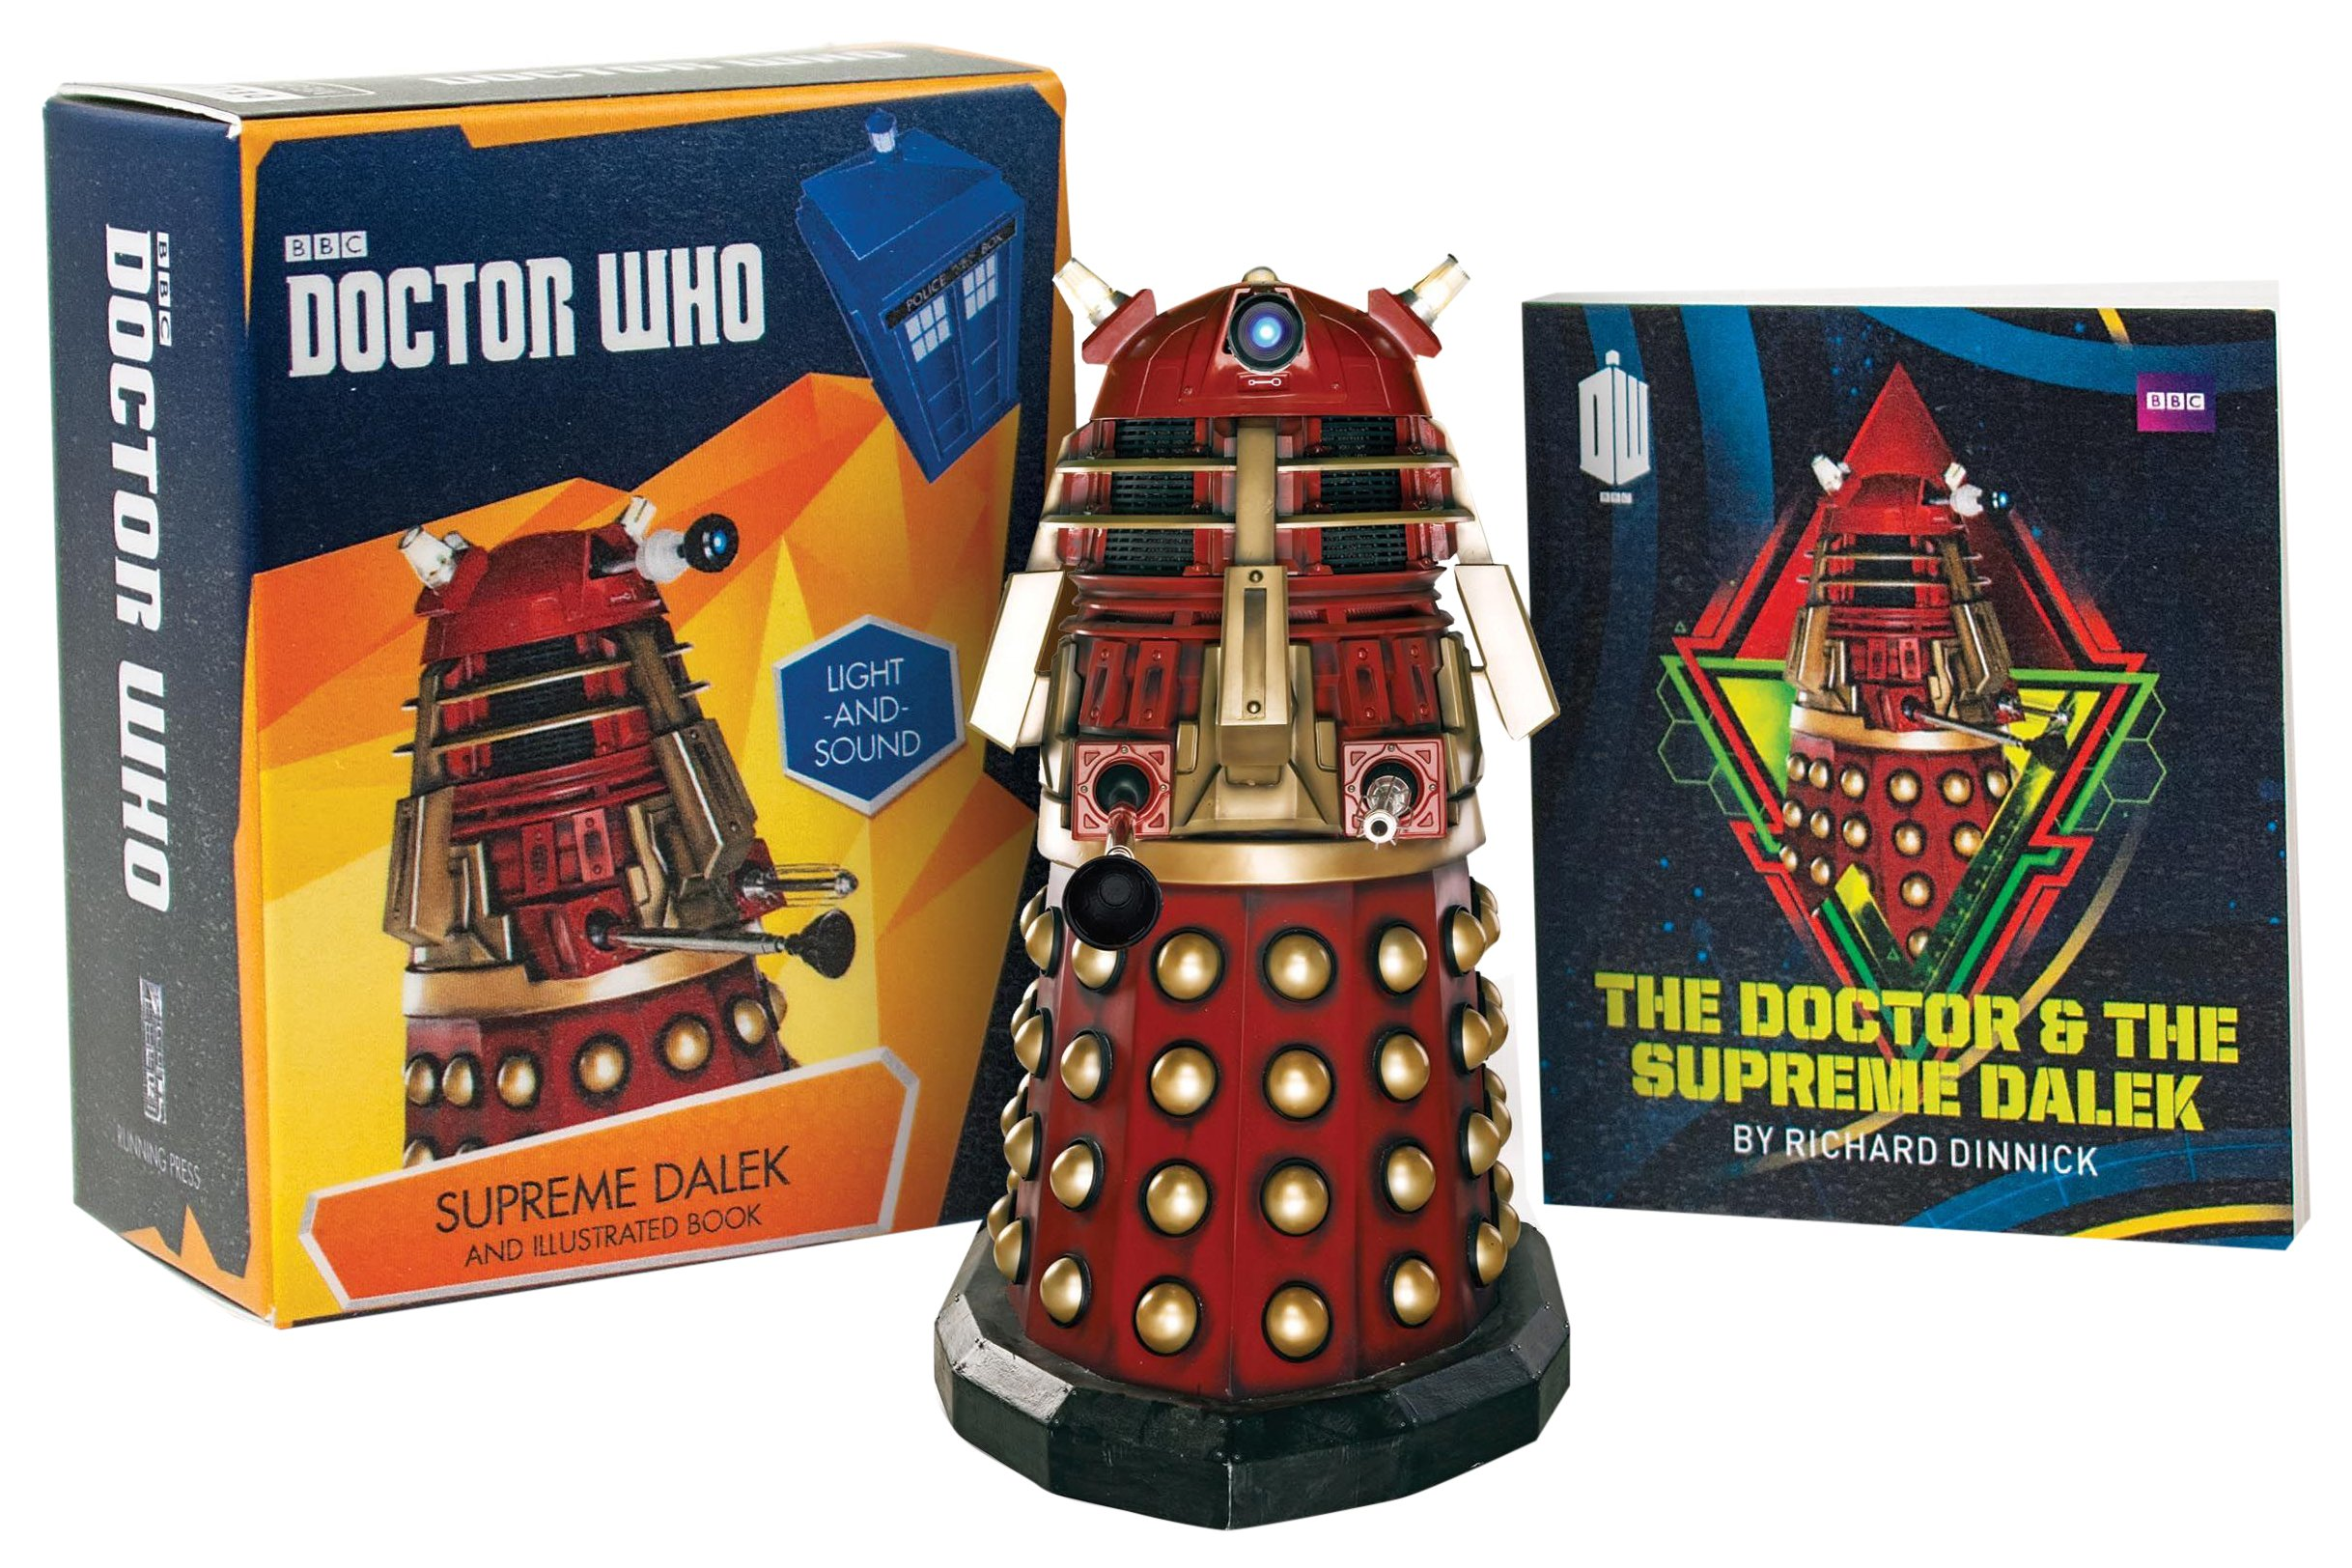 doctor who supreme dalek and illustrated book with